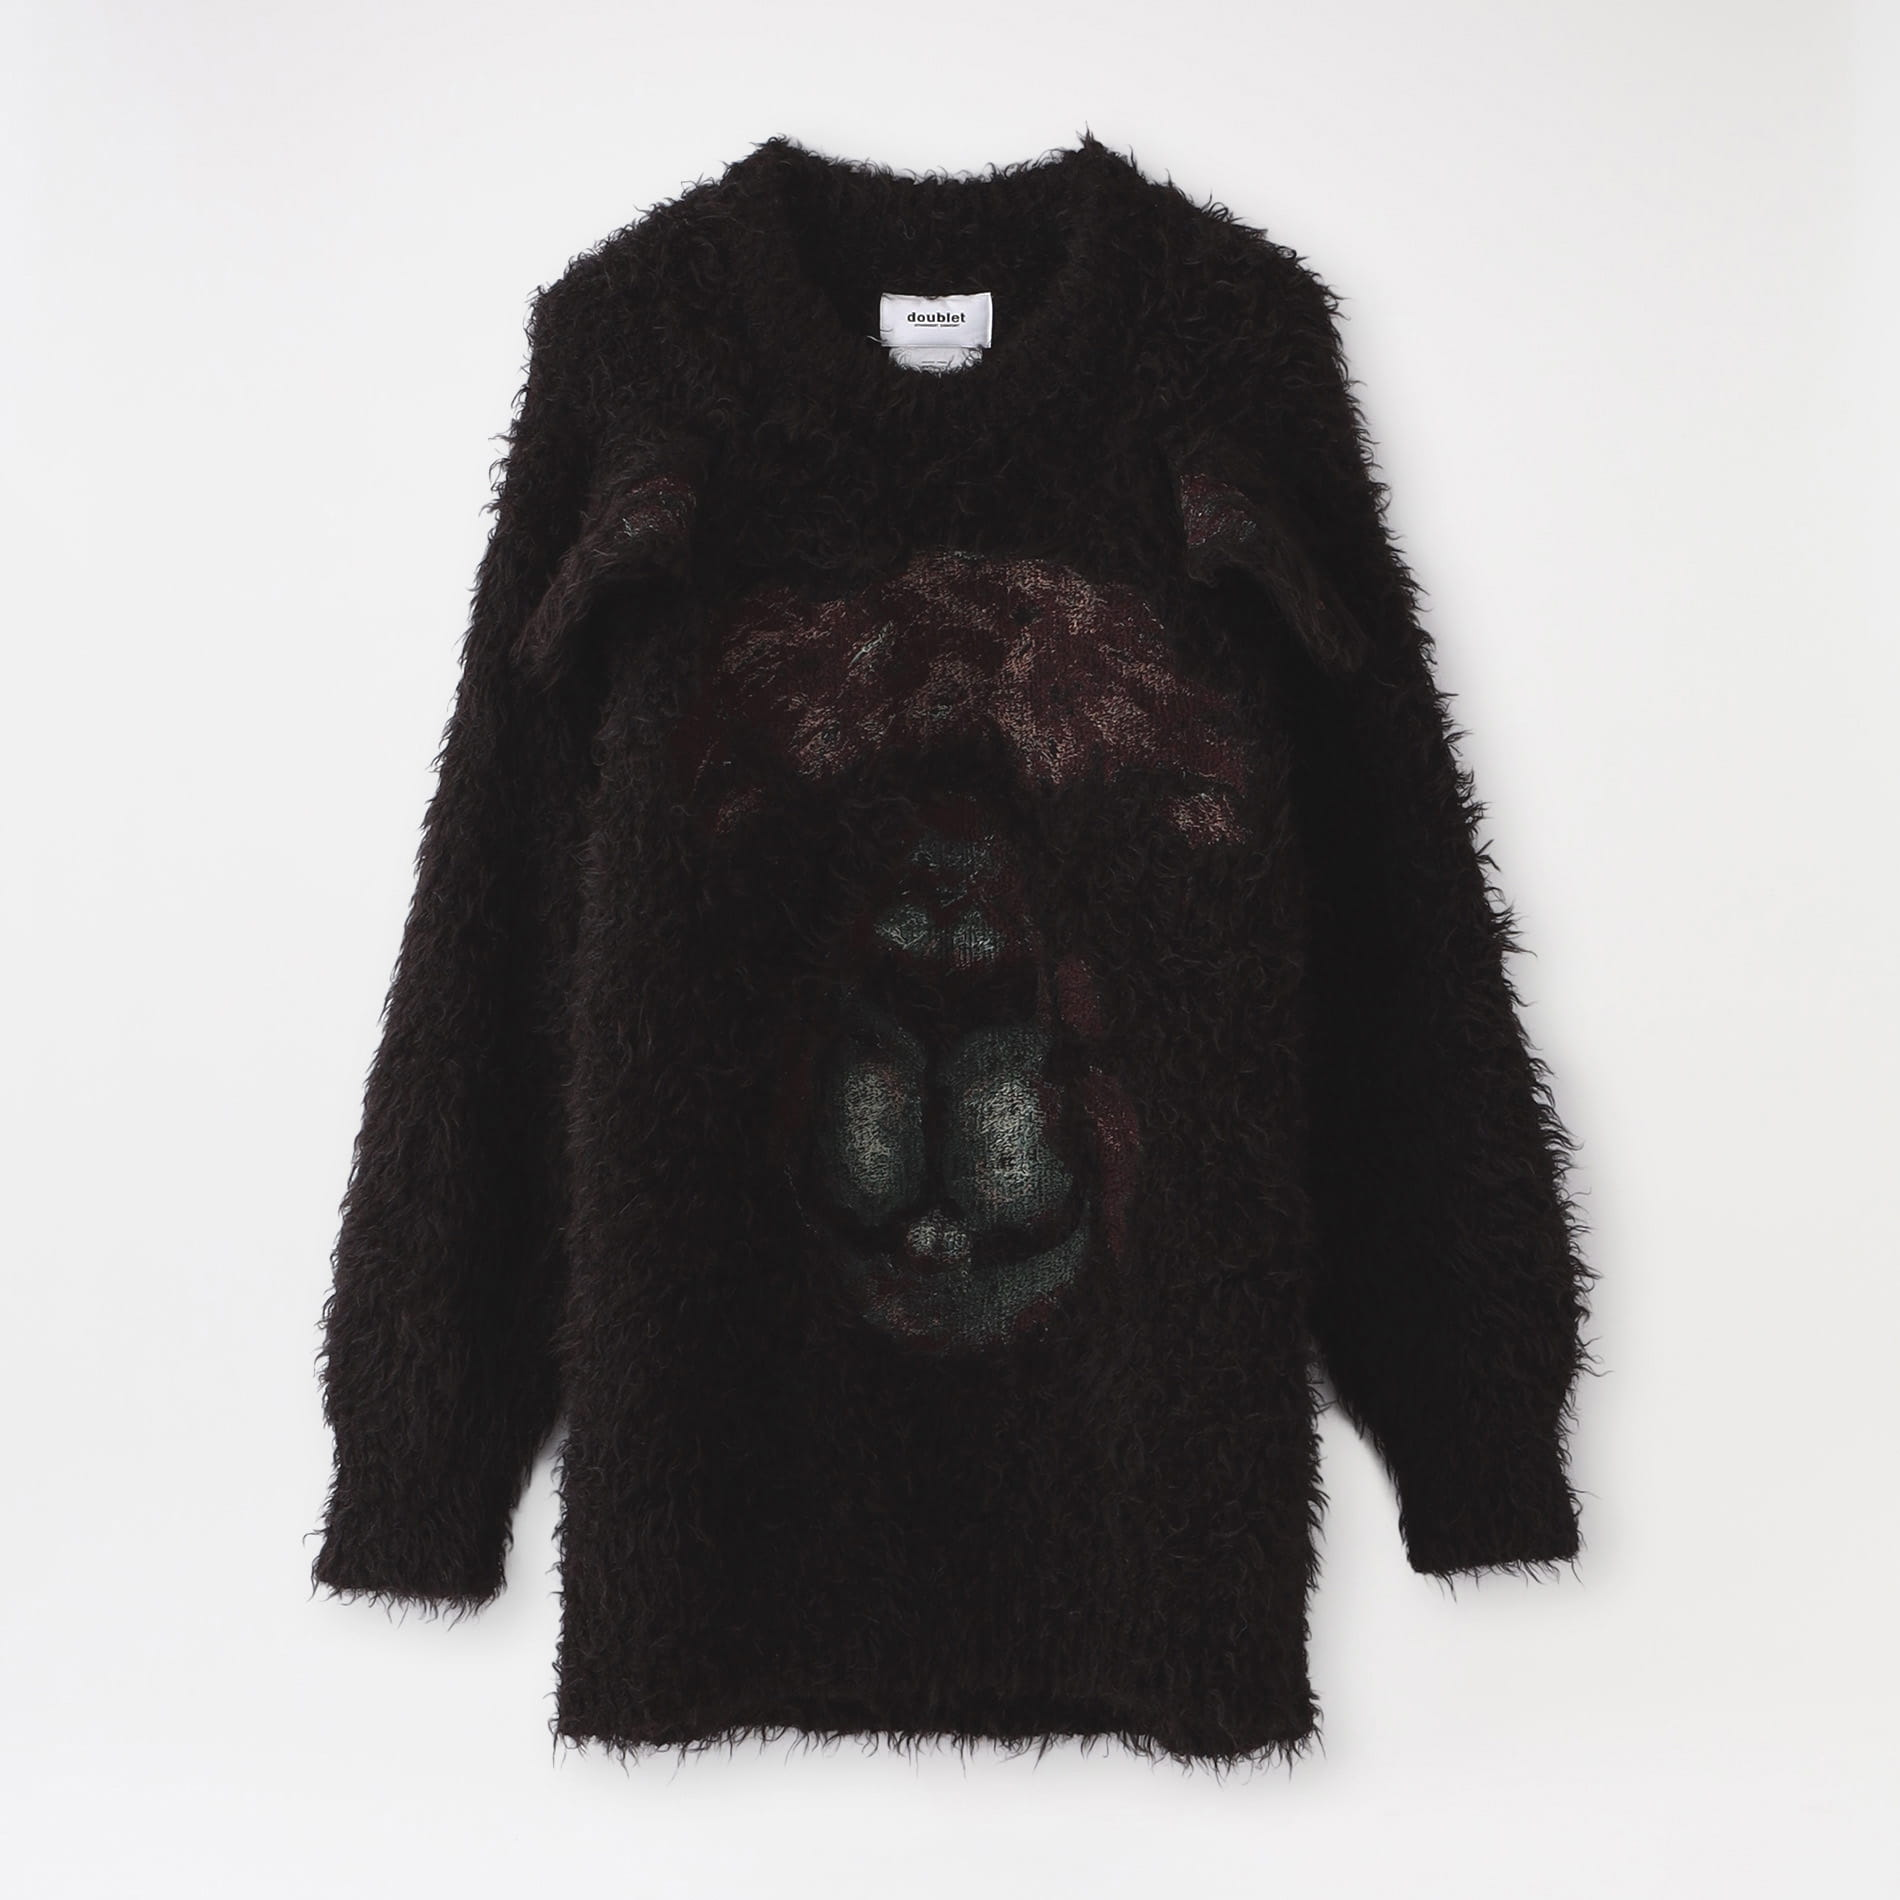 【doublet】MEN ニット ANIMAL EMBROIDERY PULLOVER 21AW33KN55